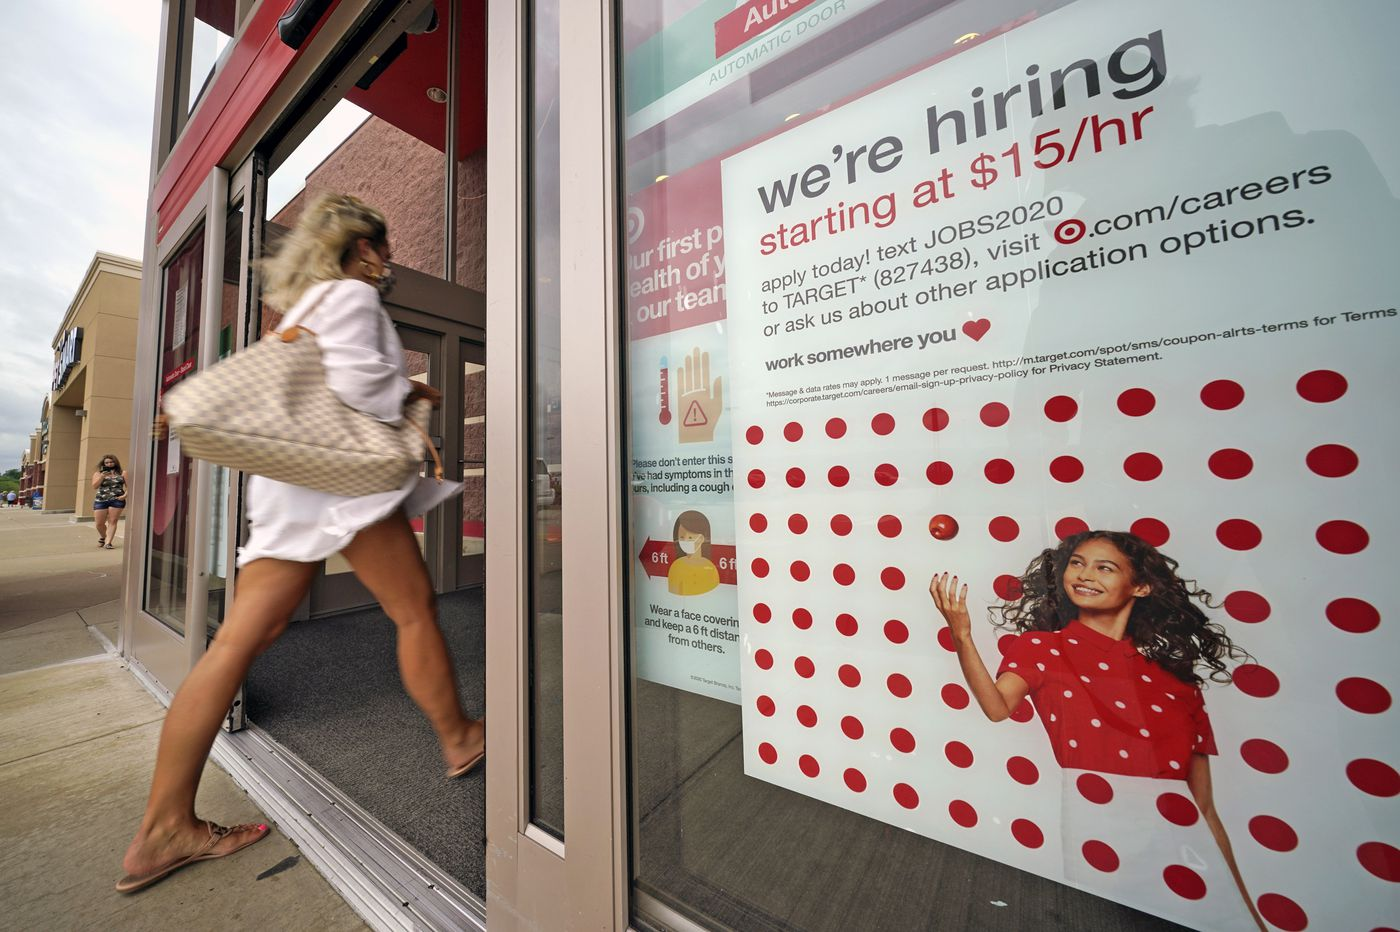 U.S. economy adds 1.4 million jobs in August as the unemployment rate hits single digits